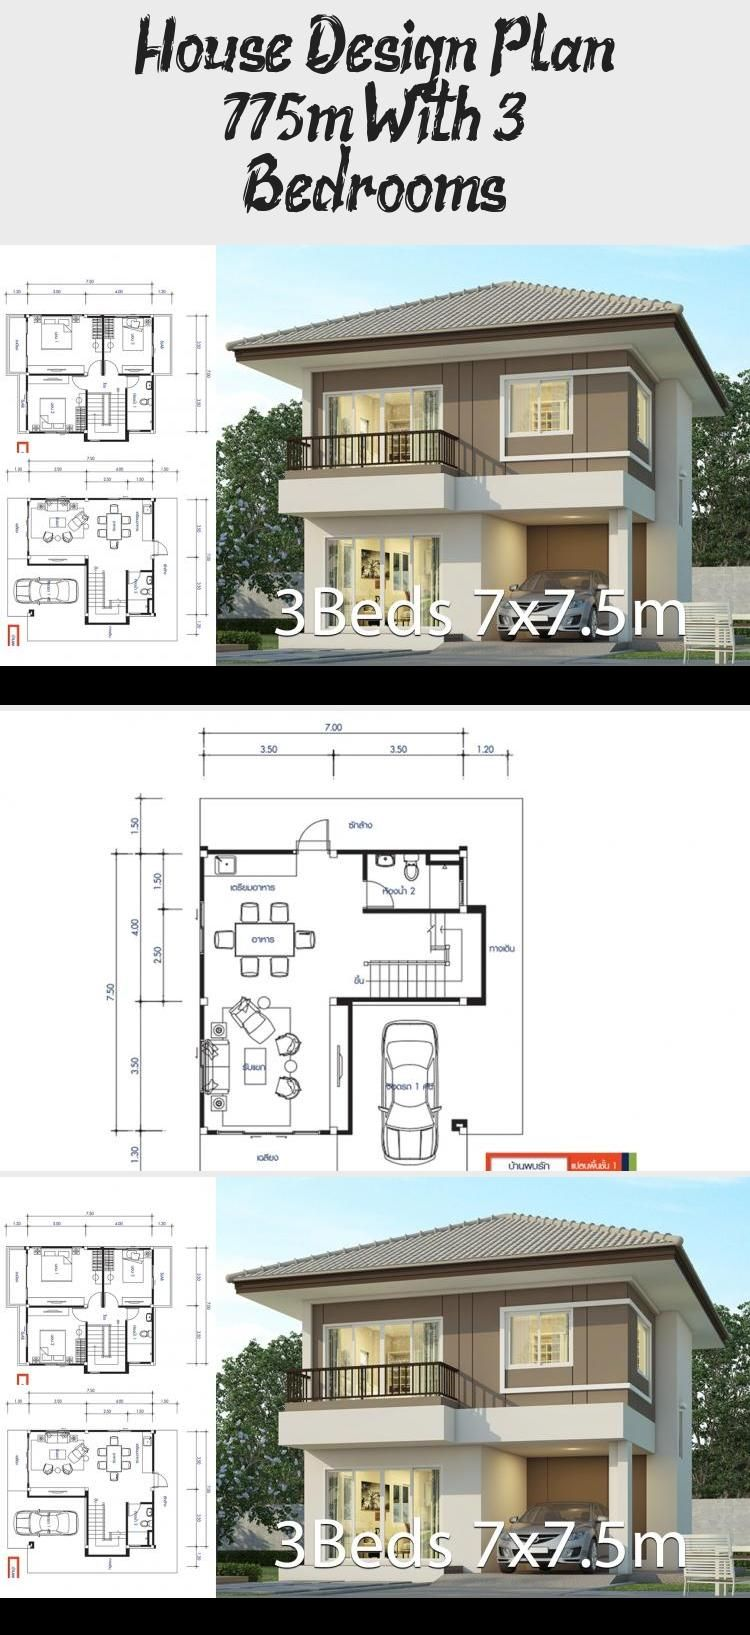 House Design Plan 7x7 5m With 3 Bedrooms Home Design With Plansearch Housedesignaustralian Housedes House Design Sustainable House Design Home Design Plans